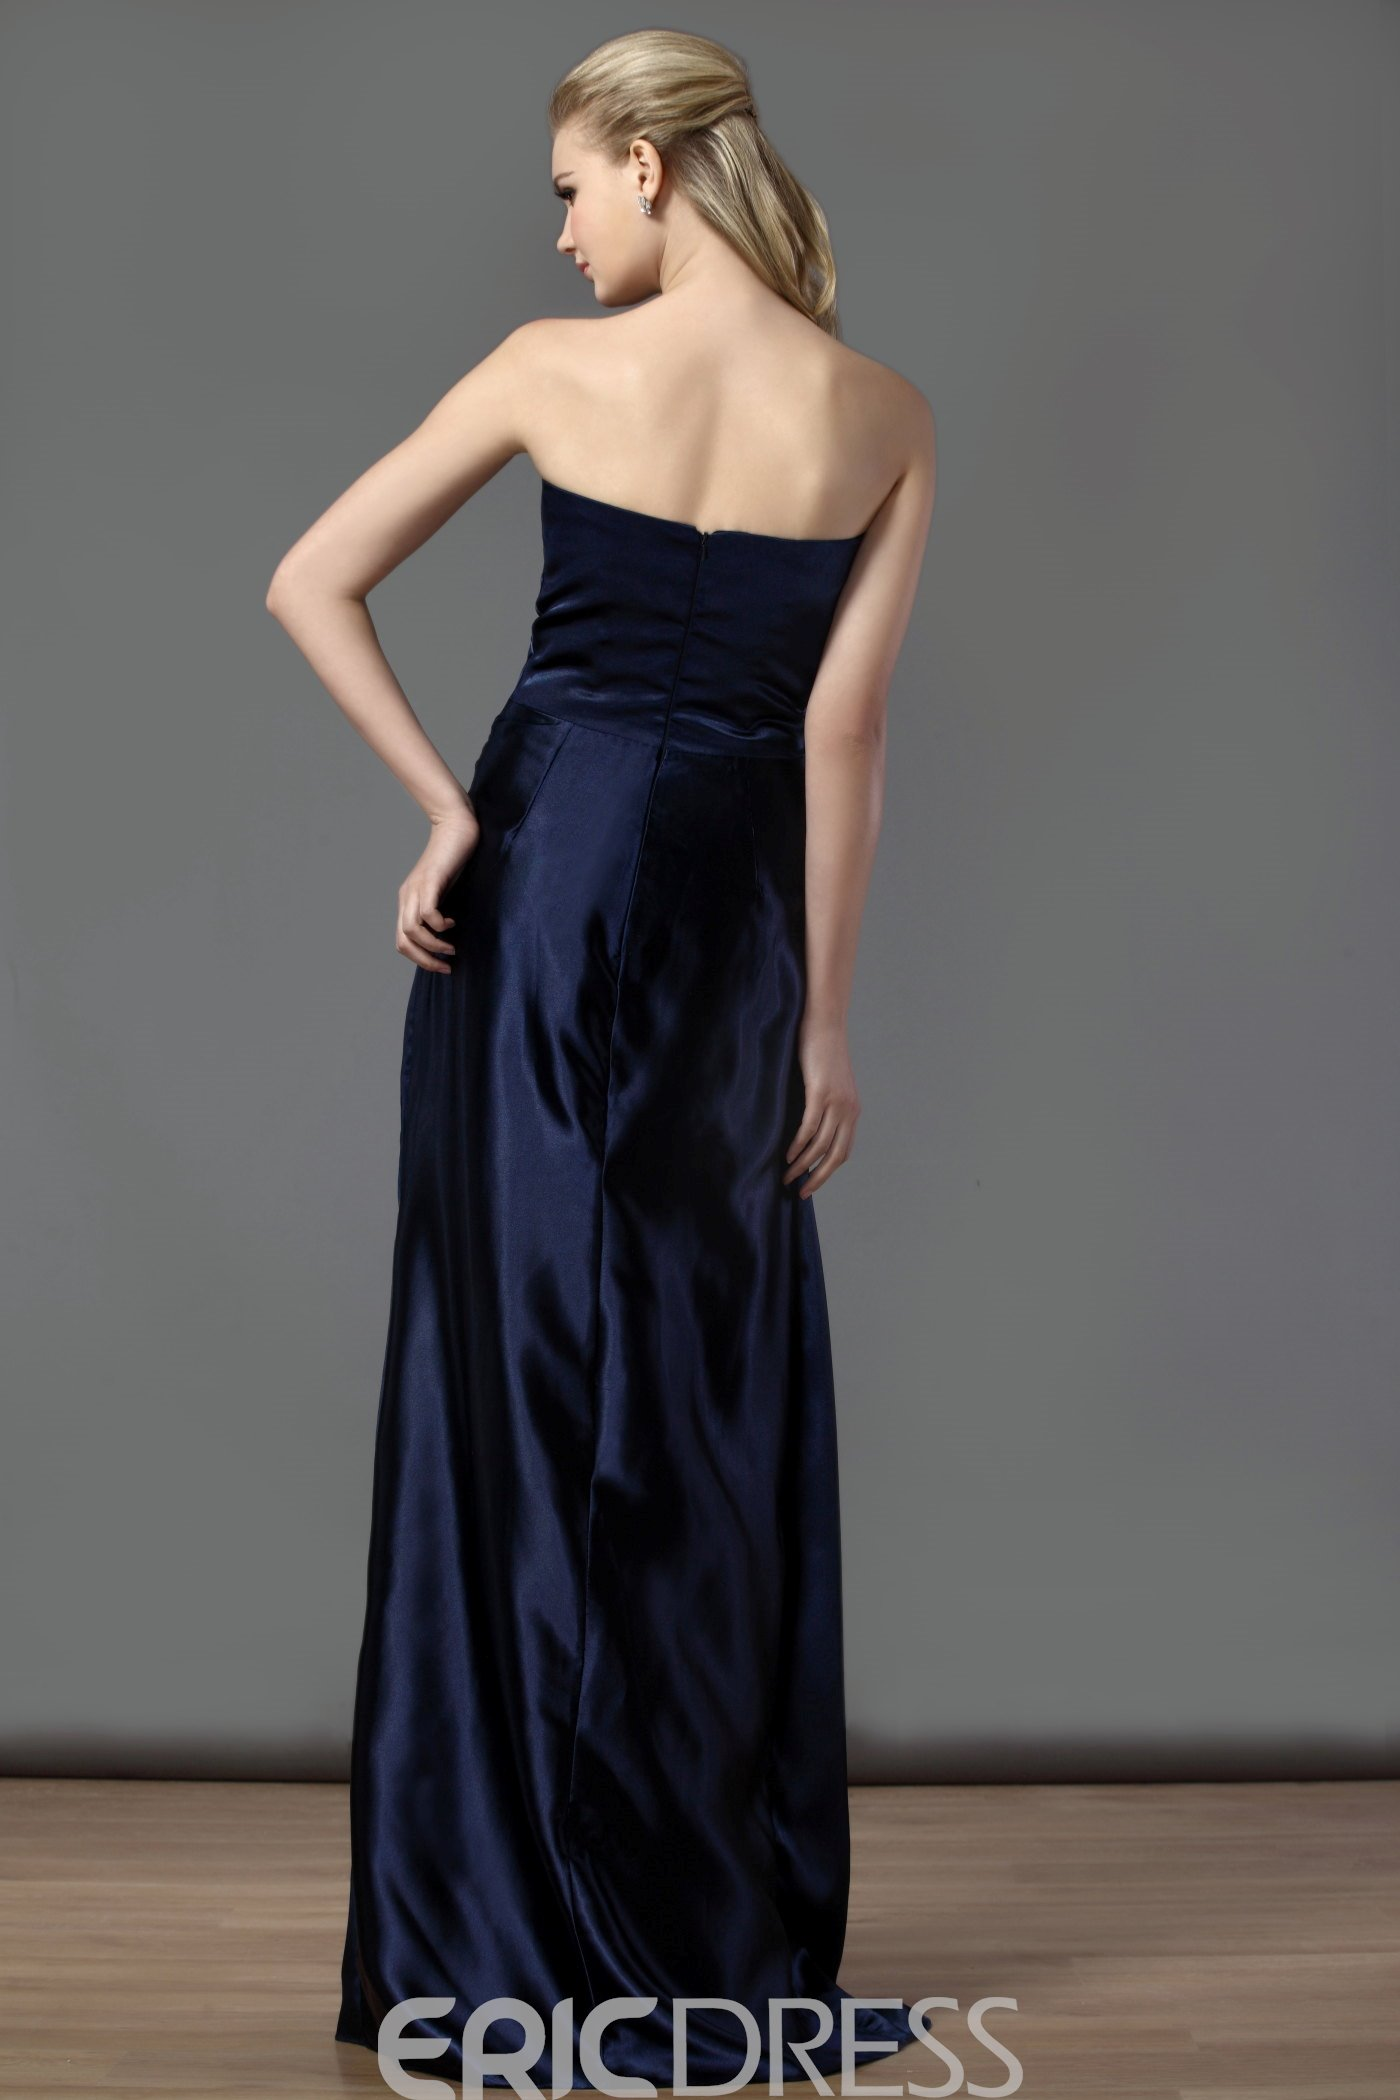 Attractive Mermaid/Trumpet Strapless Neckline Floor-Length Mother of the Bride Dress